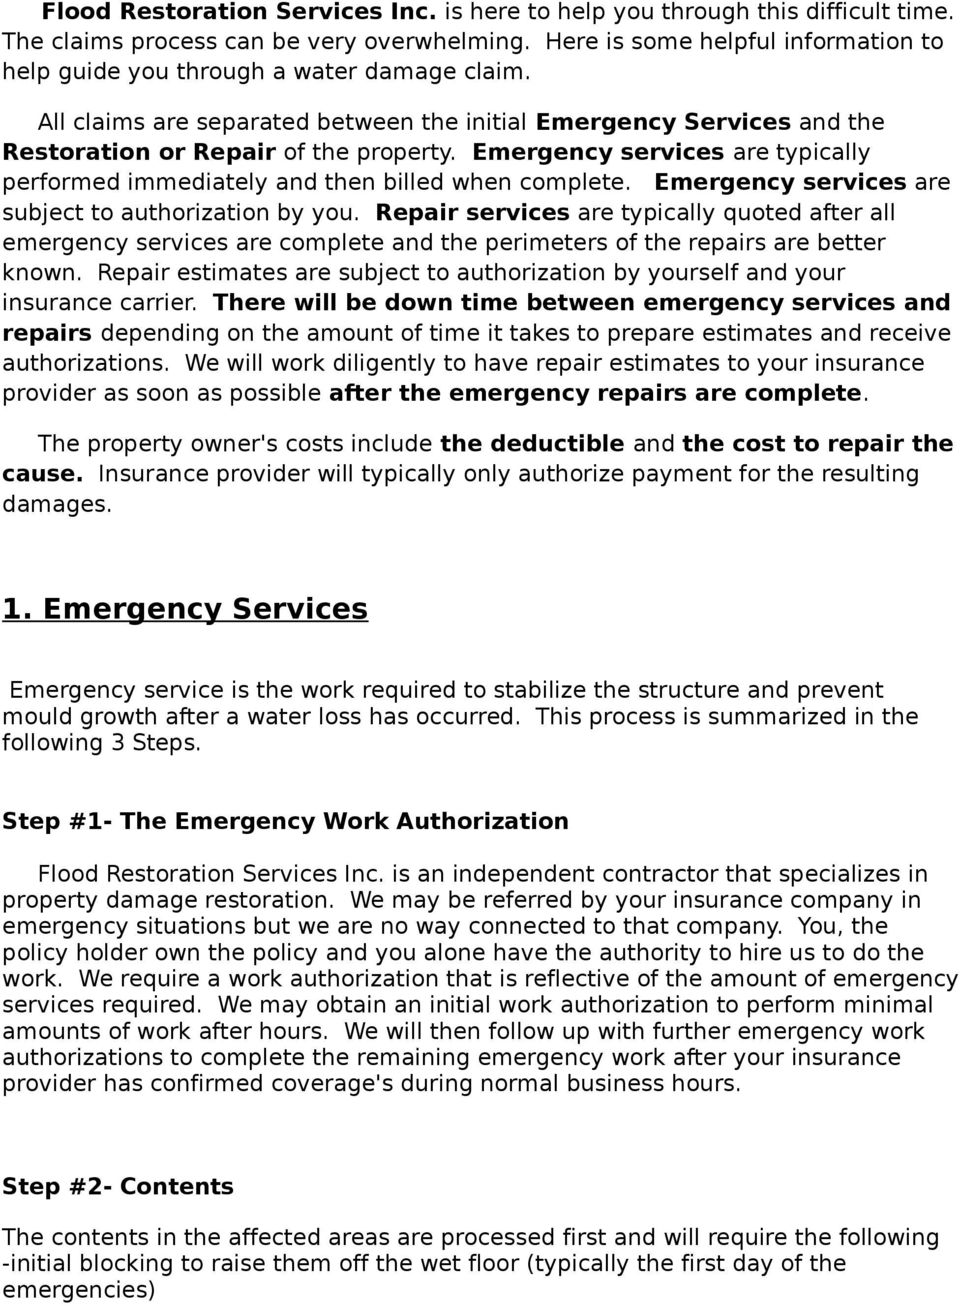 Emergency services are typically performed immediately and then billed when complete. Emergency services are subject to authorization by you.